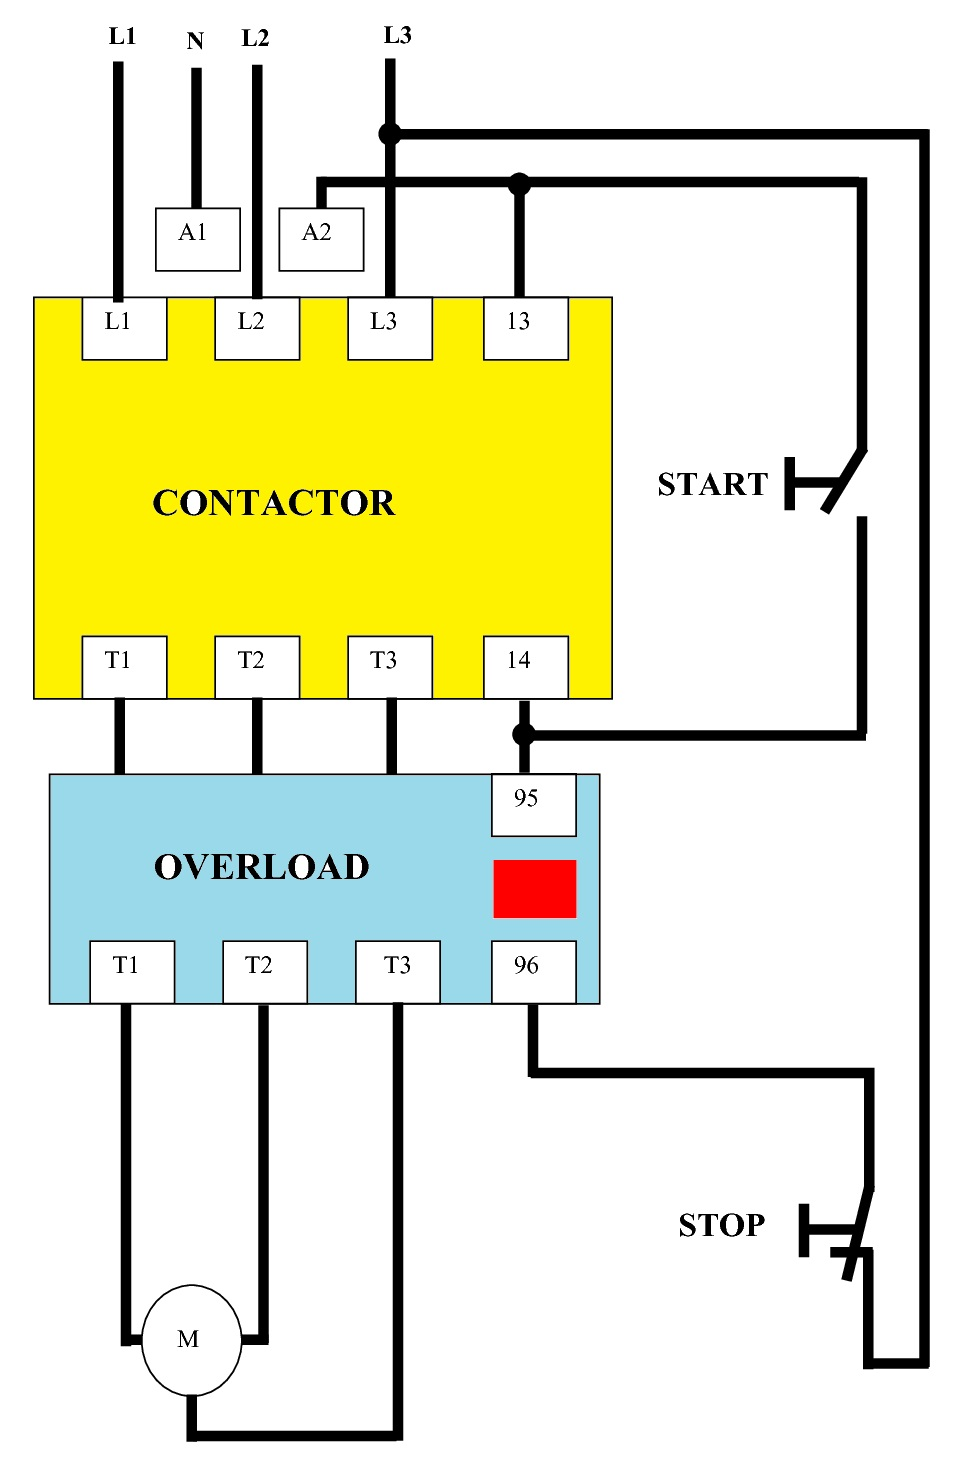 39 Getting RV Solar And Shore Power To Coexist Nicely together with Smart Battery Isolator Wiring Diagram together with 1153375 1993 E350 Motorhome Start System moreover C er Trailer Battery Wiring Diagram furthermore SO news. on transfer switch wiring diagram for motorhome